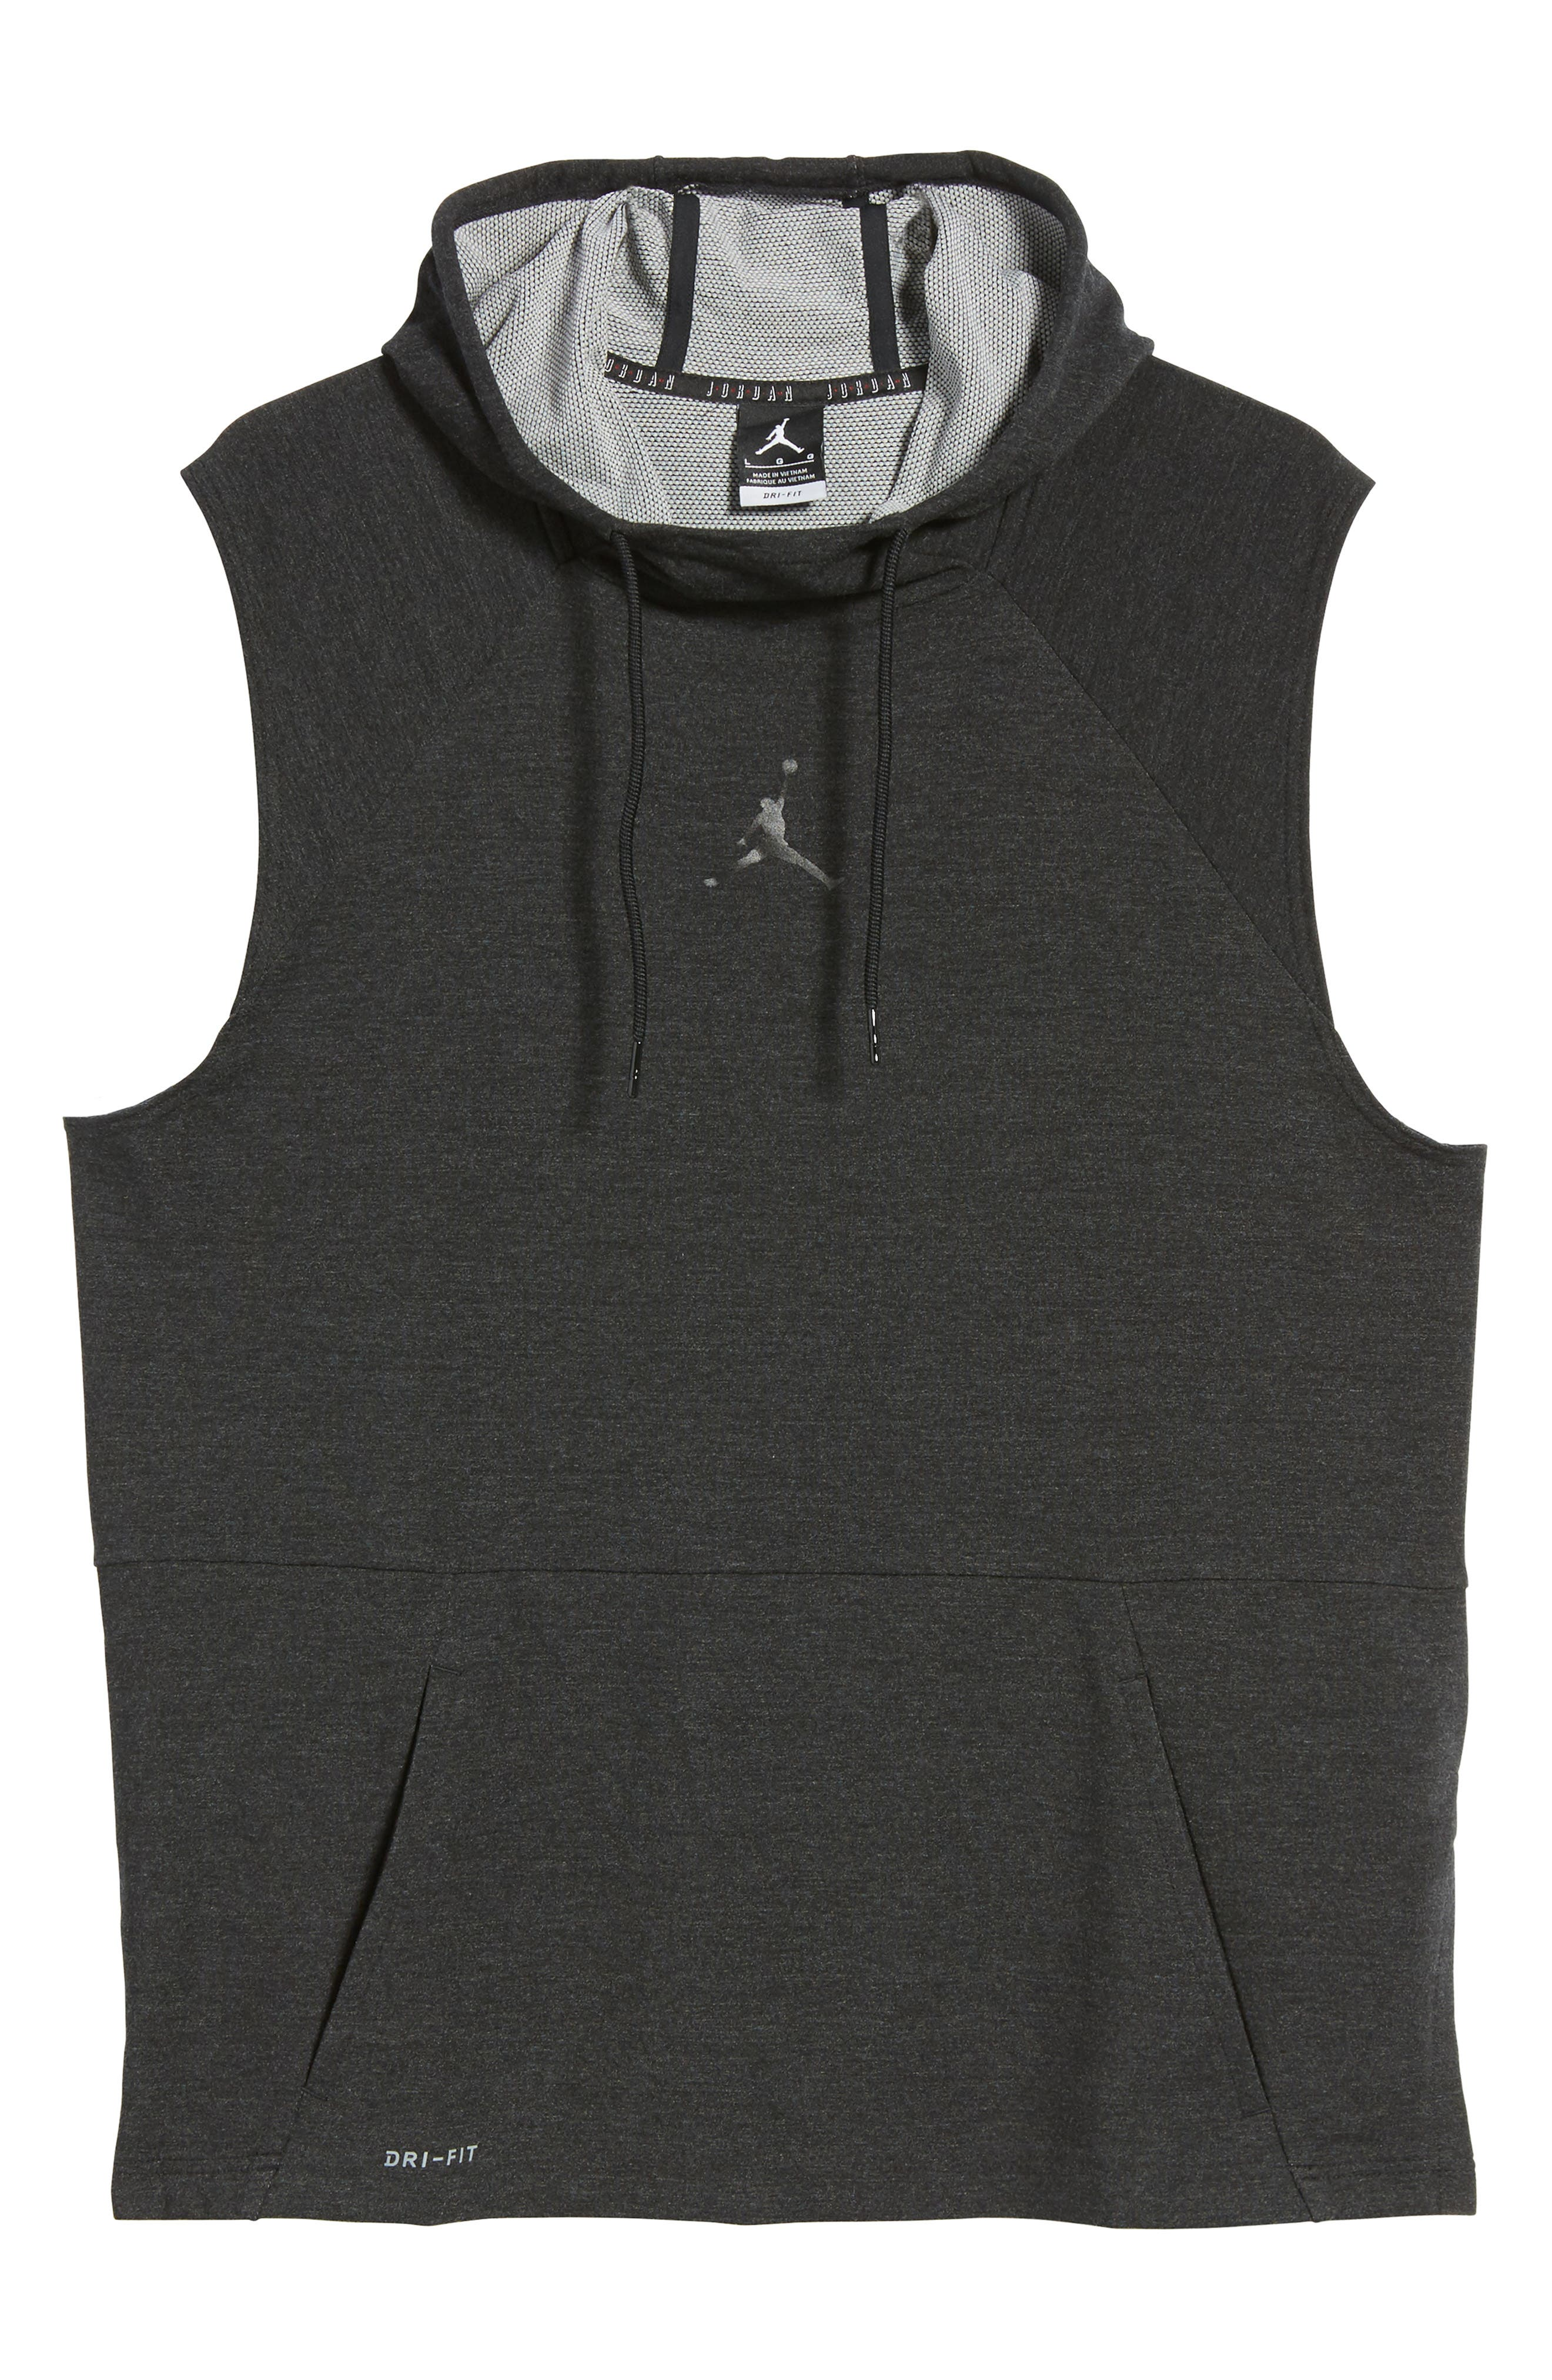 23 Tech Sphere Sleeveless Training Hoodie,                             Alternate thumbnail 6, color,                             010